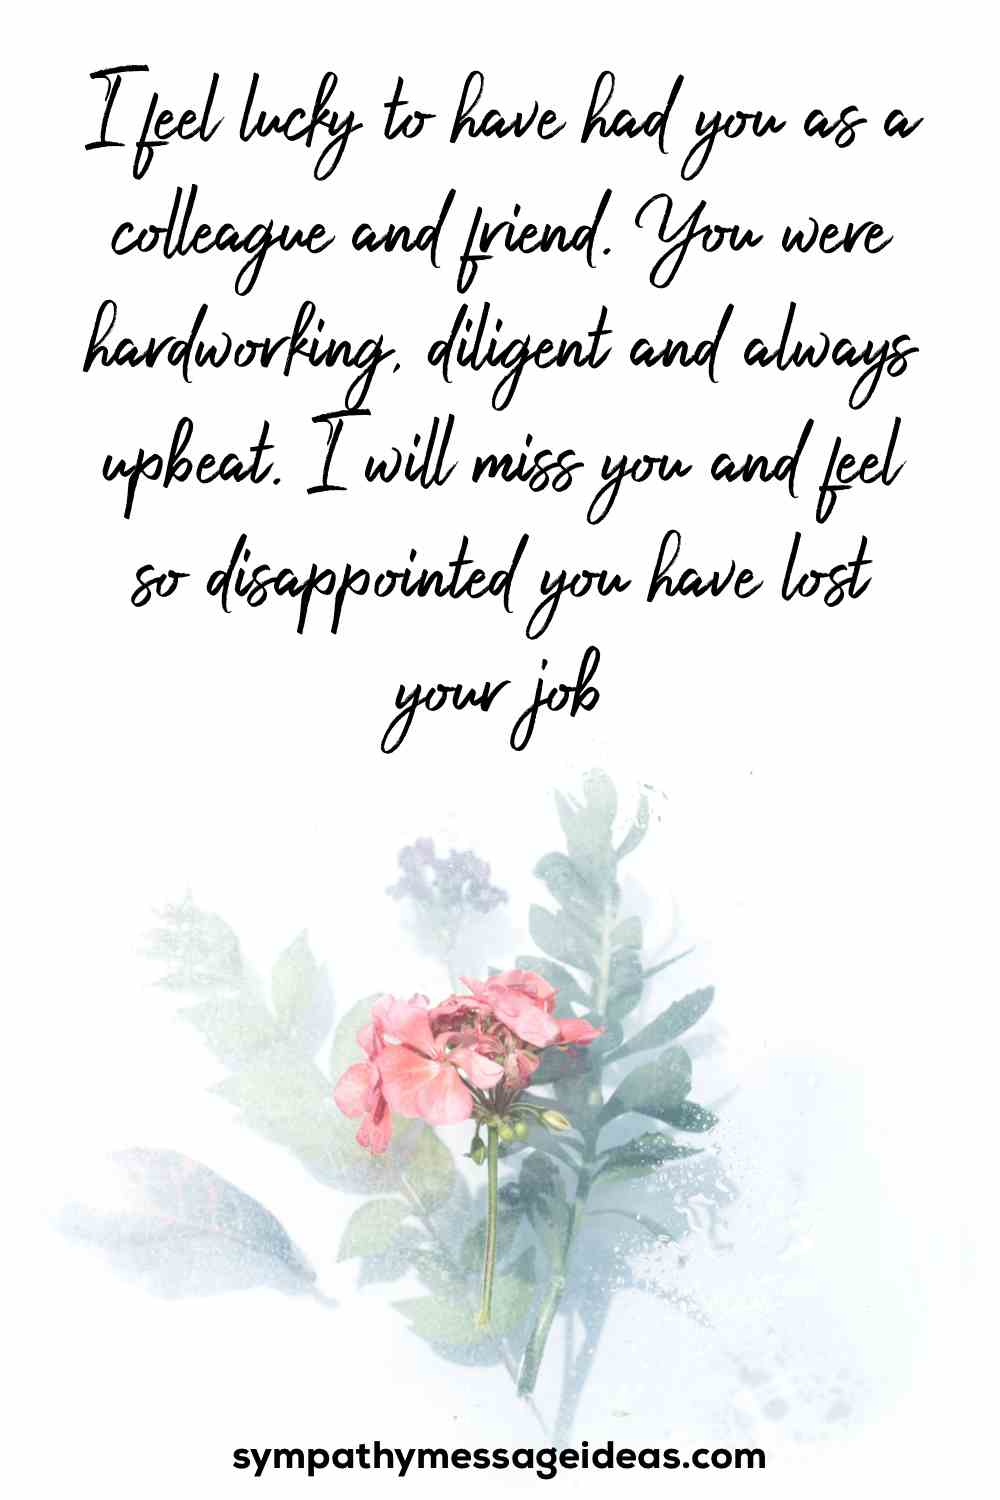 message of sympathy for job loss